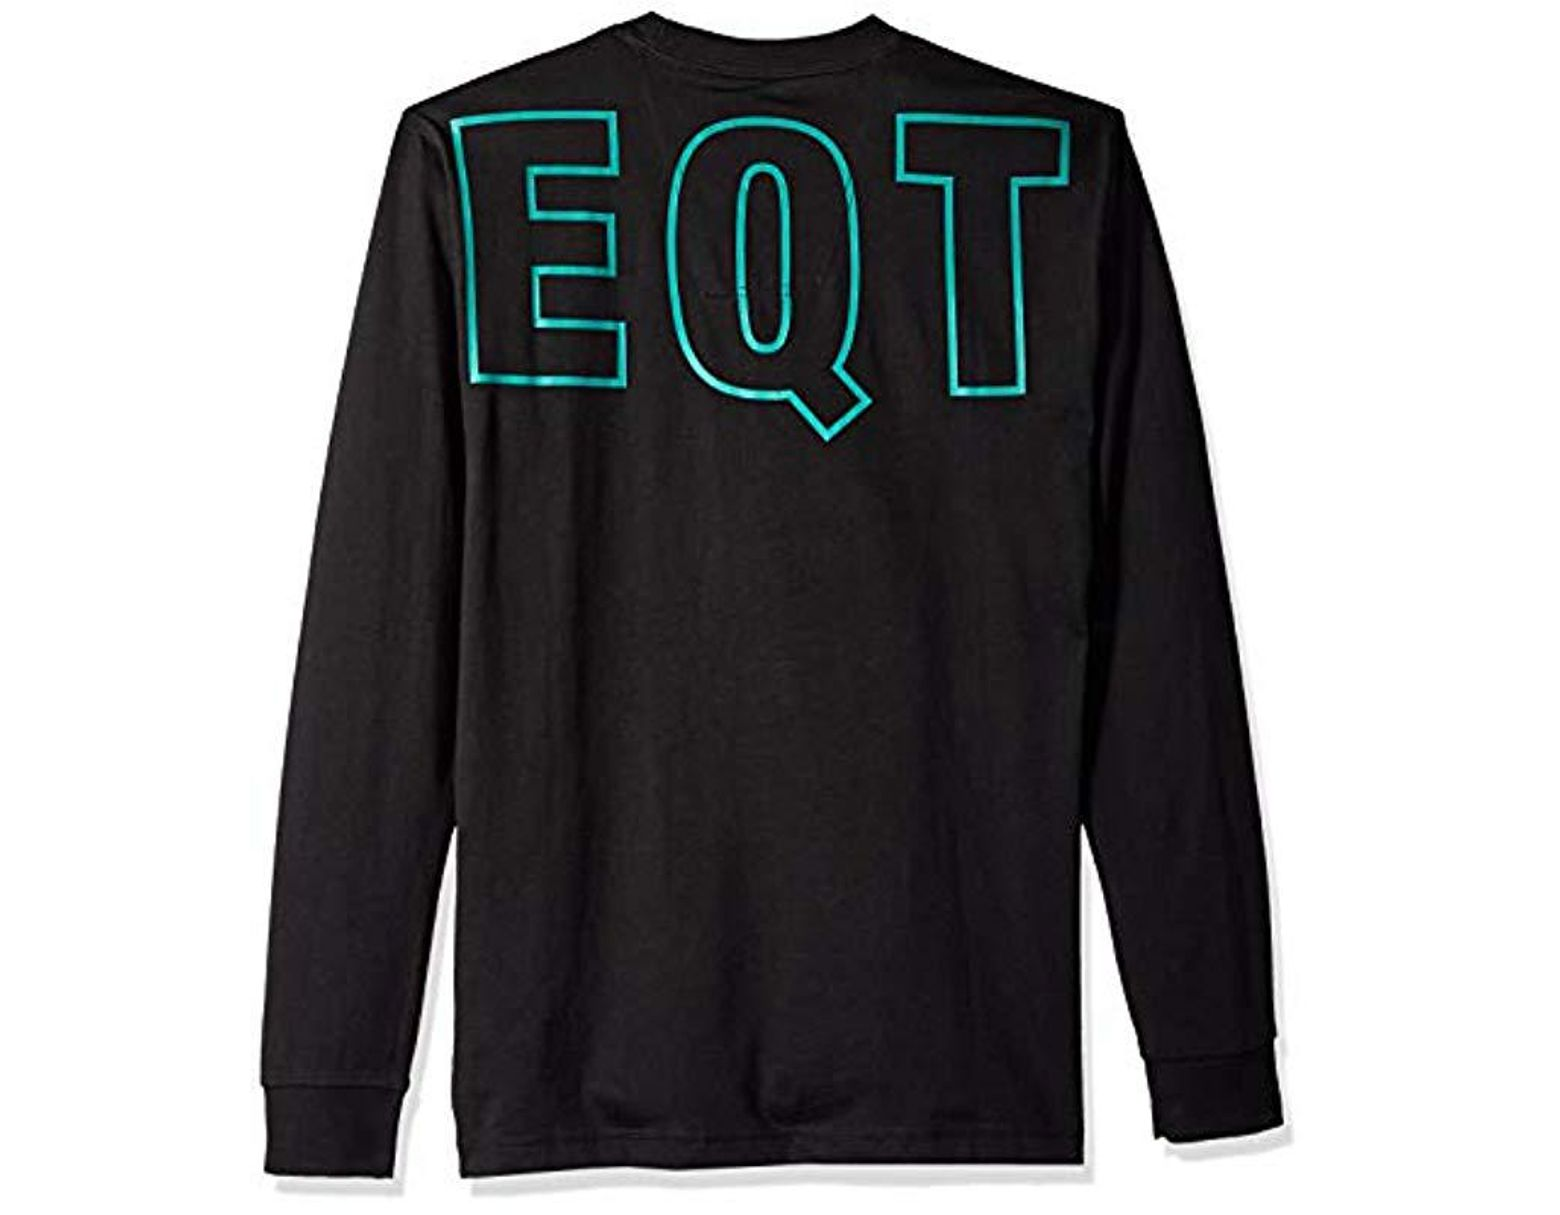 ad9c5af6ad3a0 adidas Originals Eqt Long Sleeve Graphic Tee in Black for Men - Save 29% -  Lyst